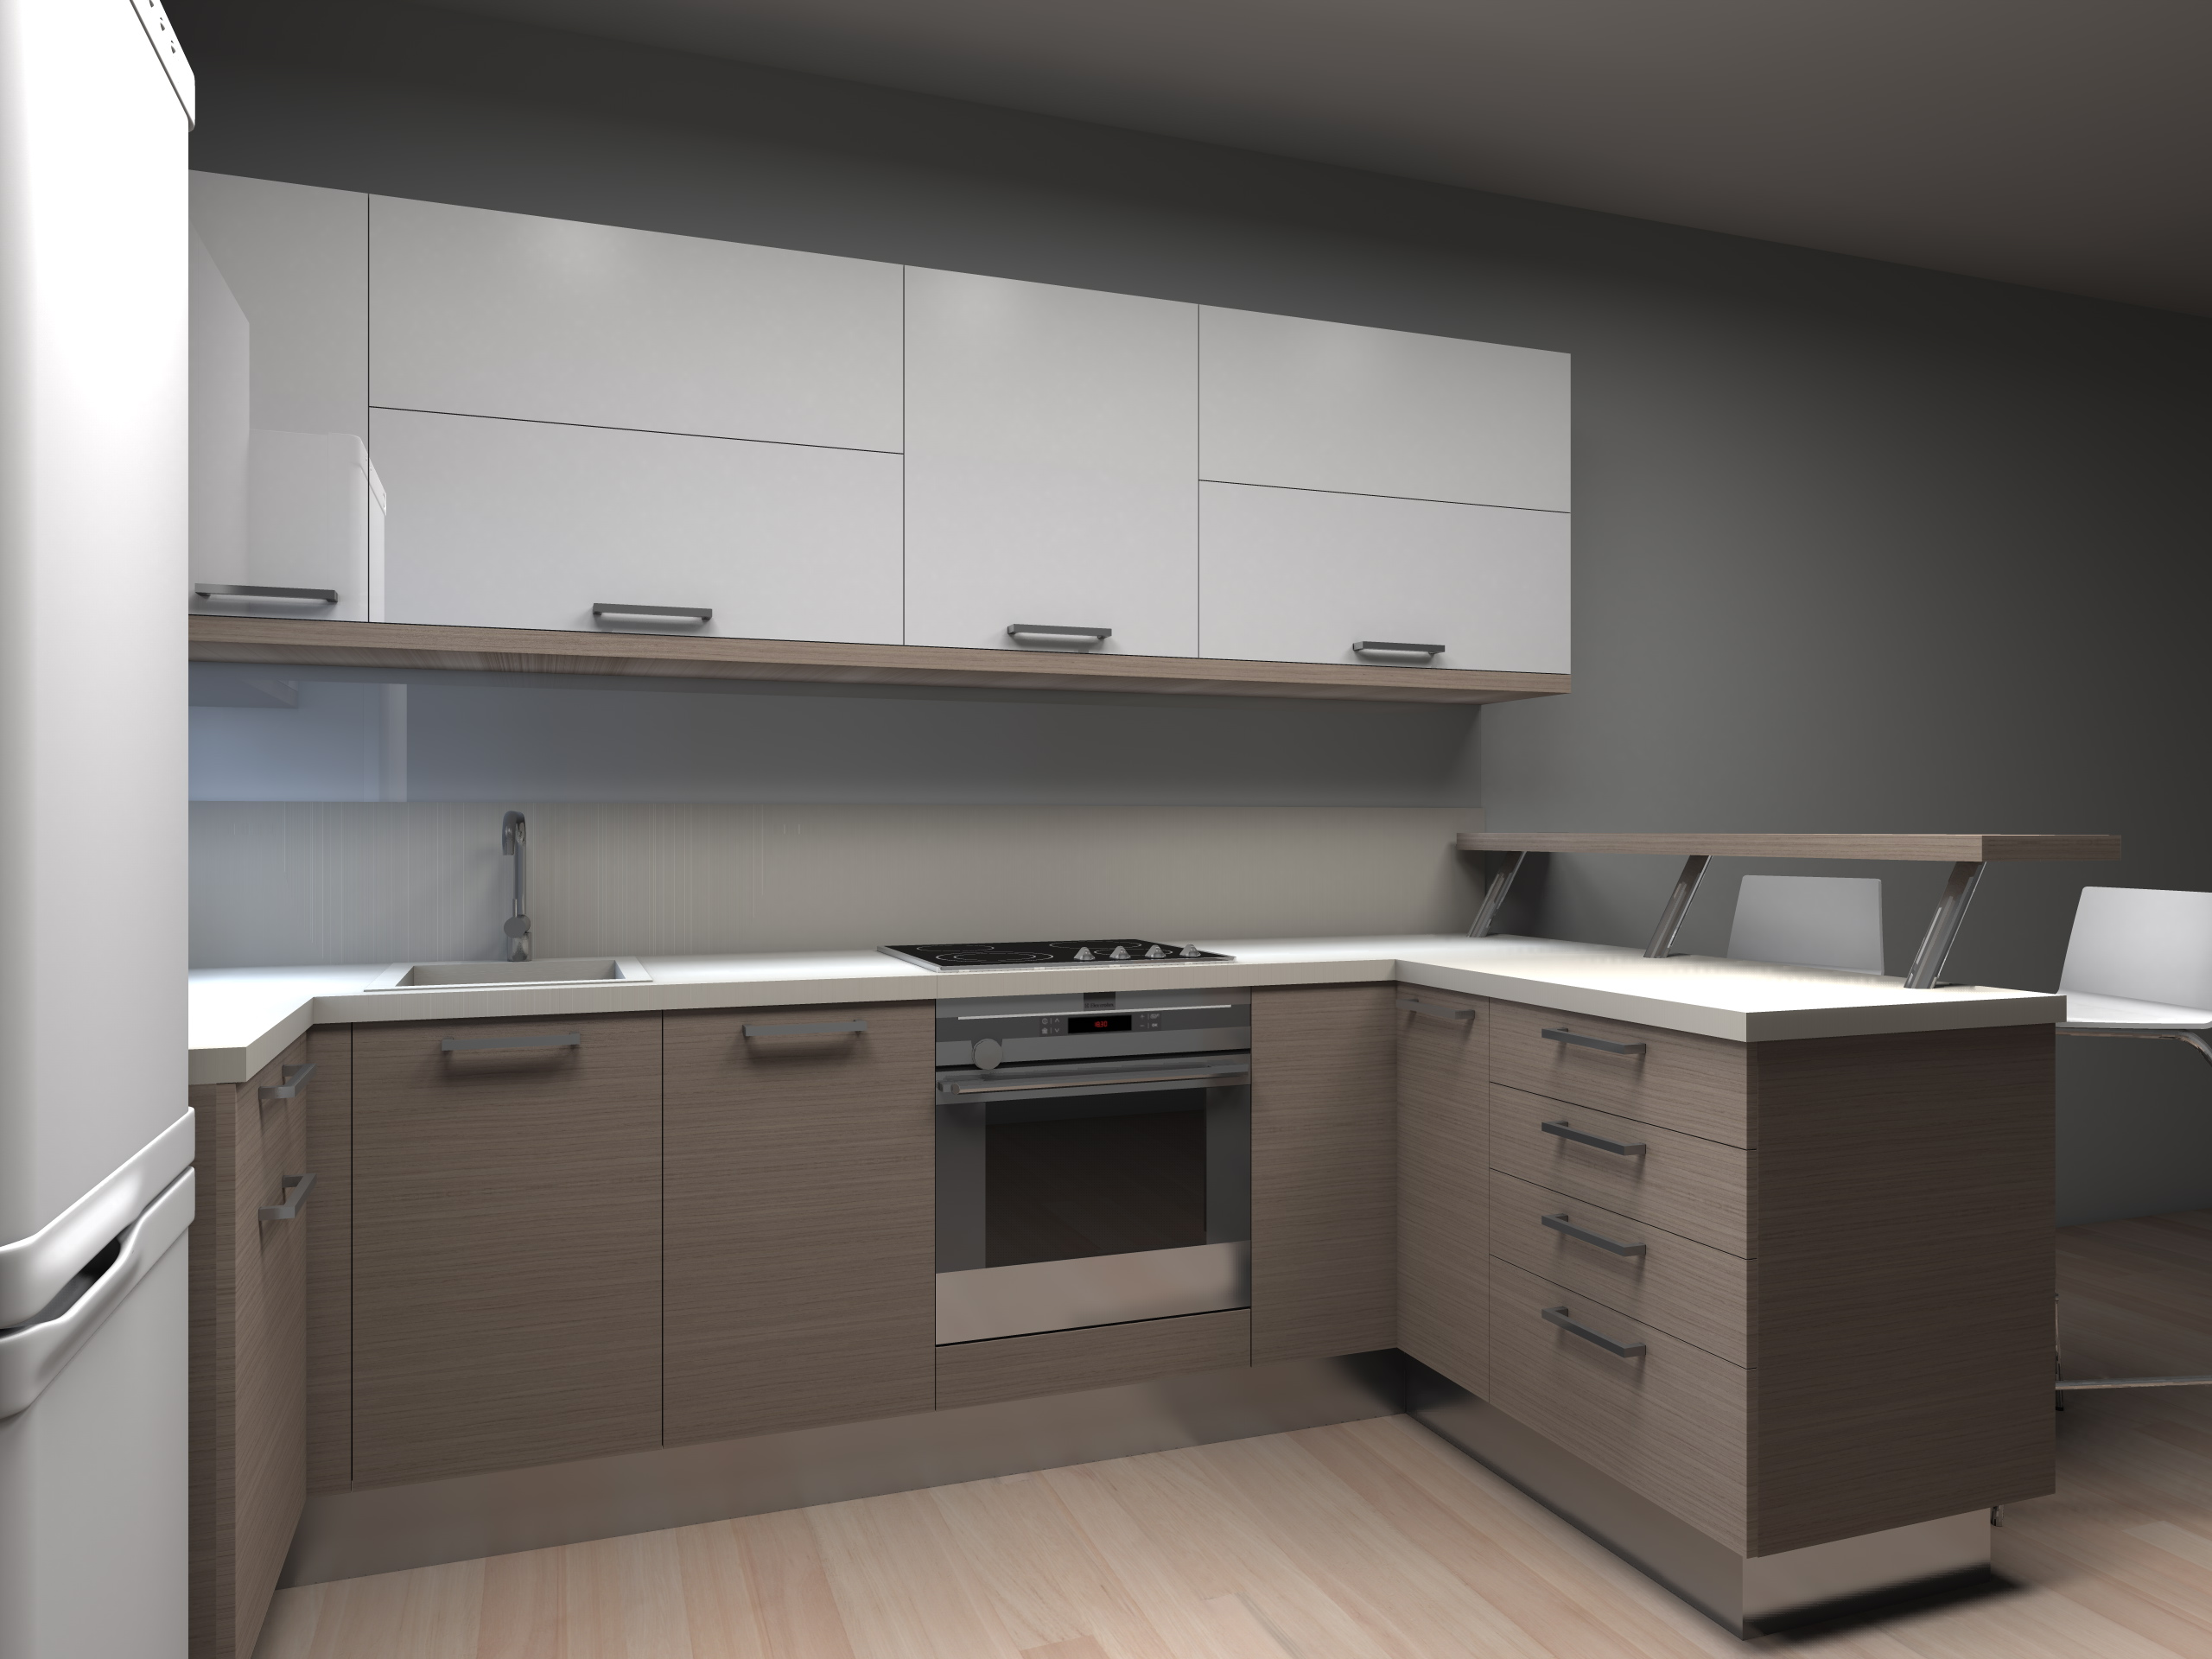 kitchen design 6 x 8 6 x 6 kitchen layout images search 515